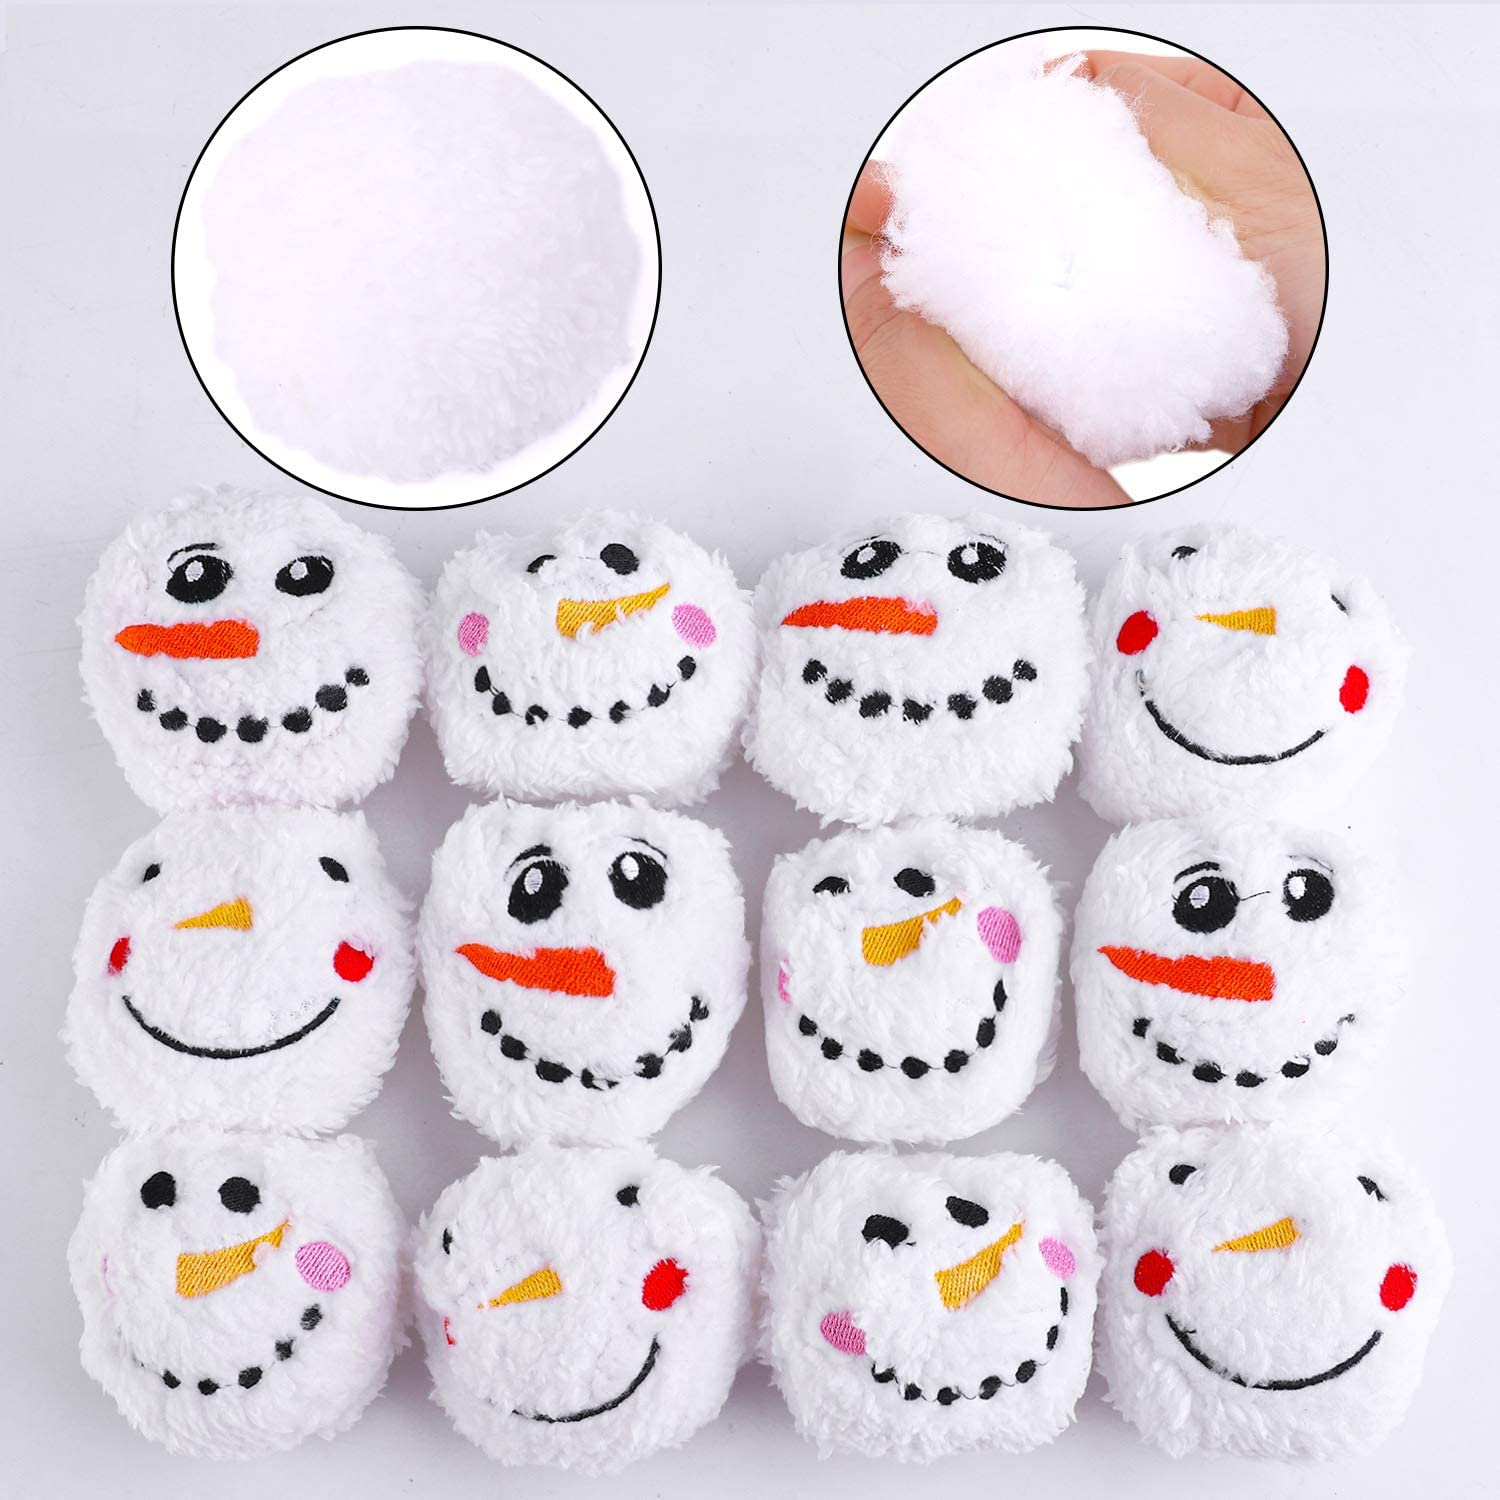 Aneco 12 Pack Snowball Fight Snowball Fun Set Plush Snowmen Balls with A Bag Realistic for Winter Game